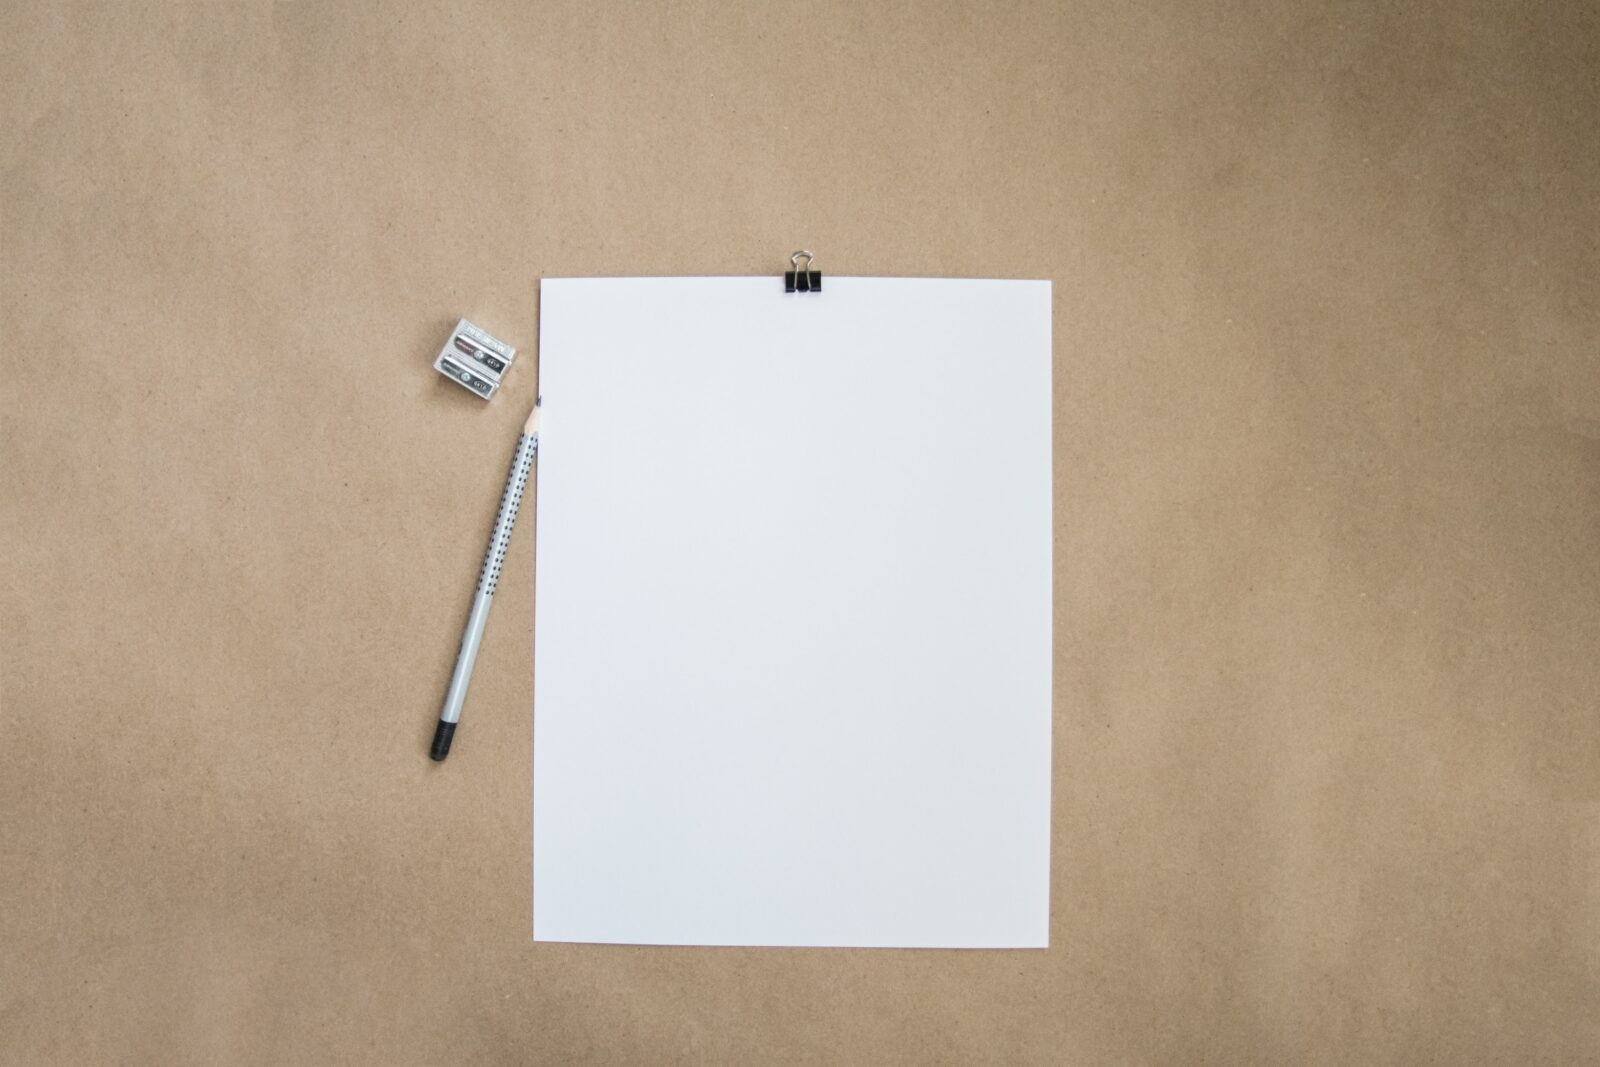 paper with a pencil on a table